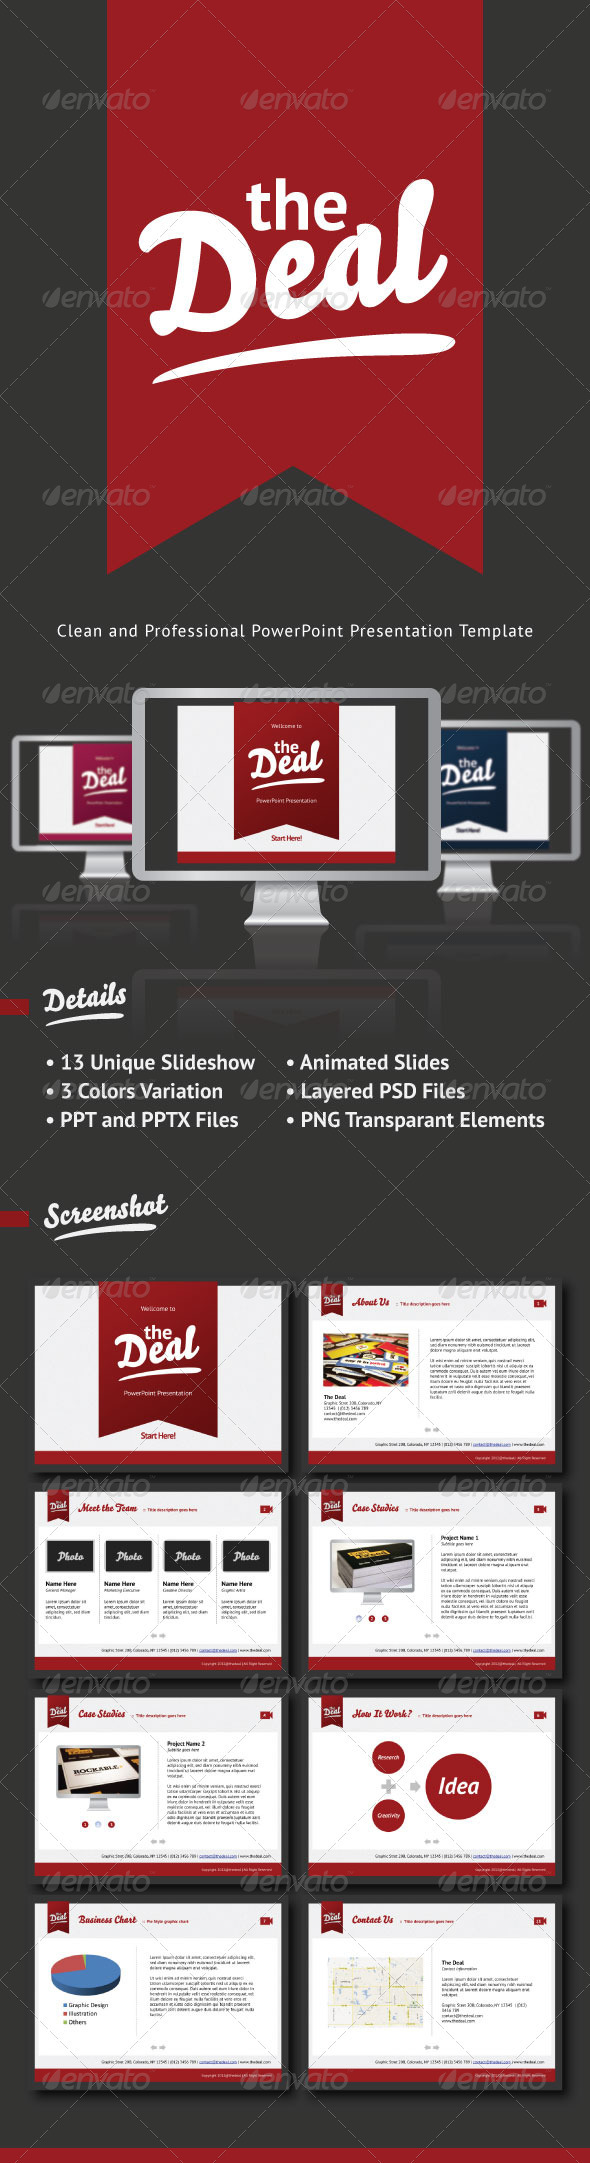 GraphicRiver The Deal Clean and Simple PowerPoint Template 1464288